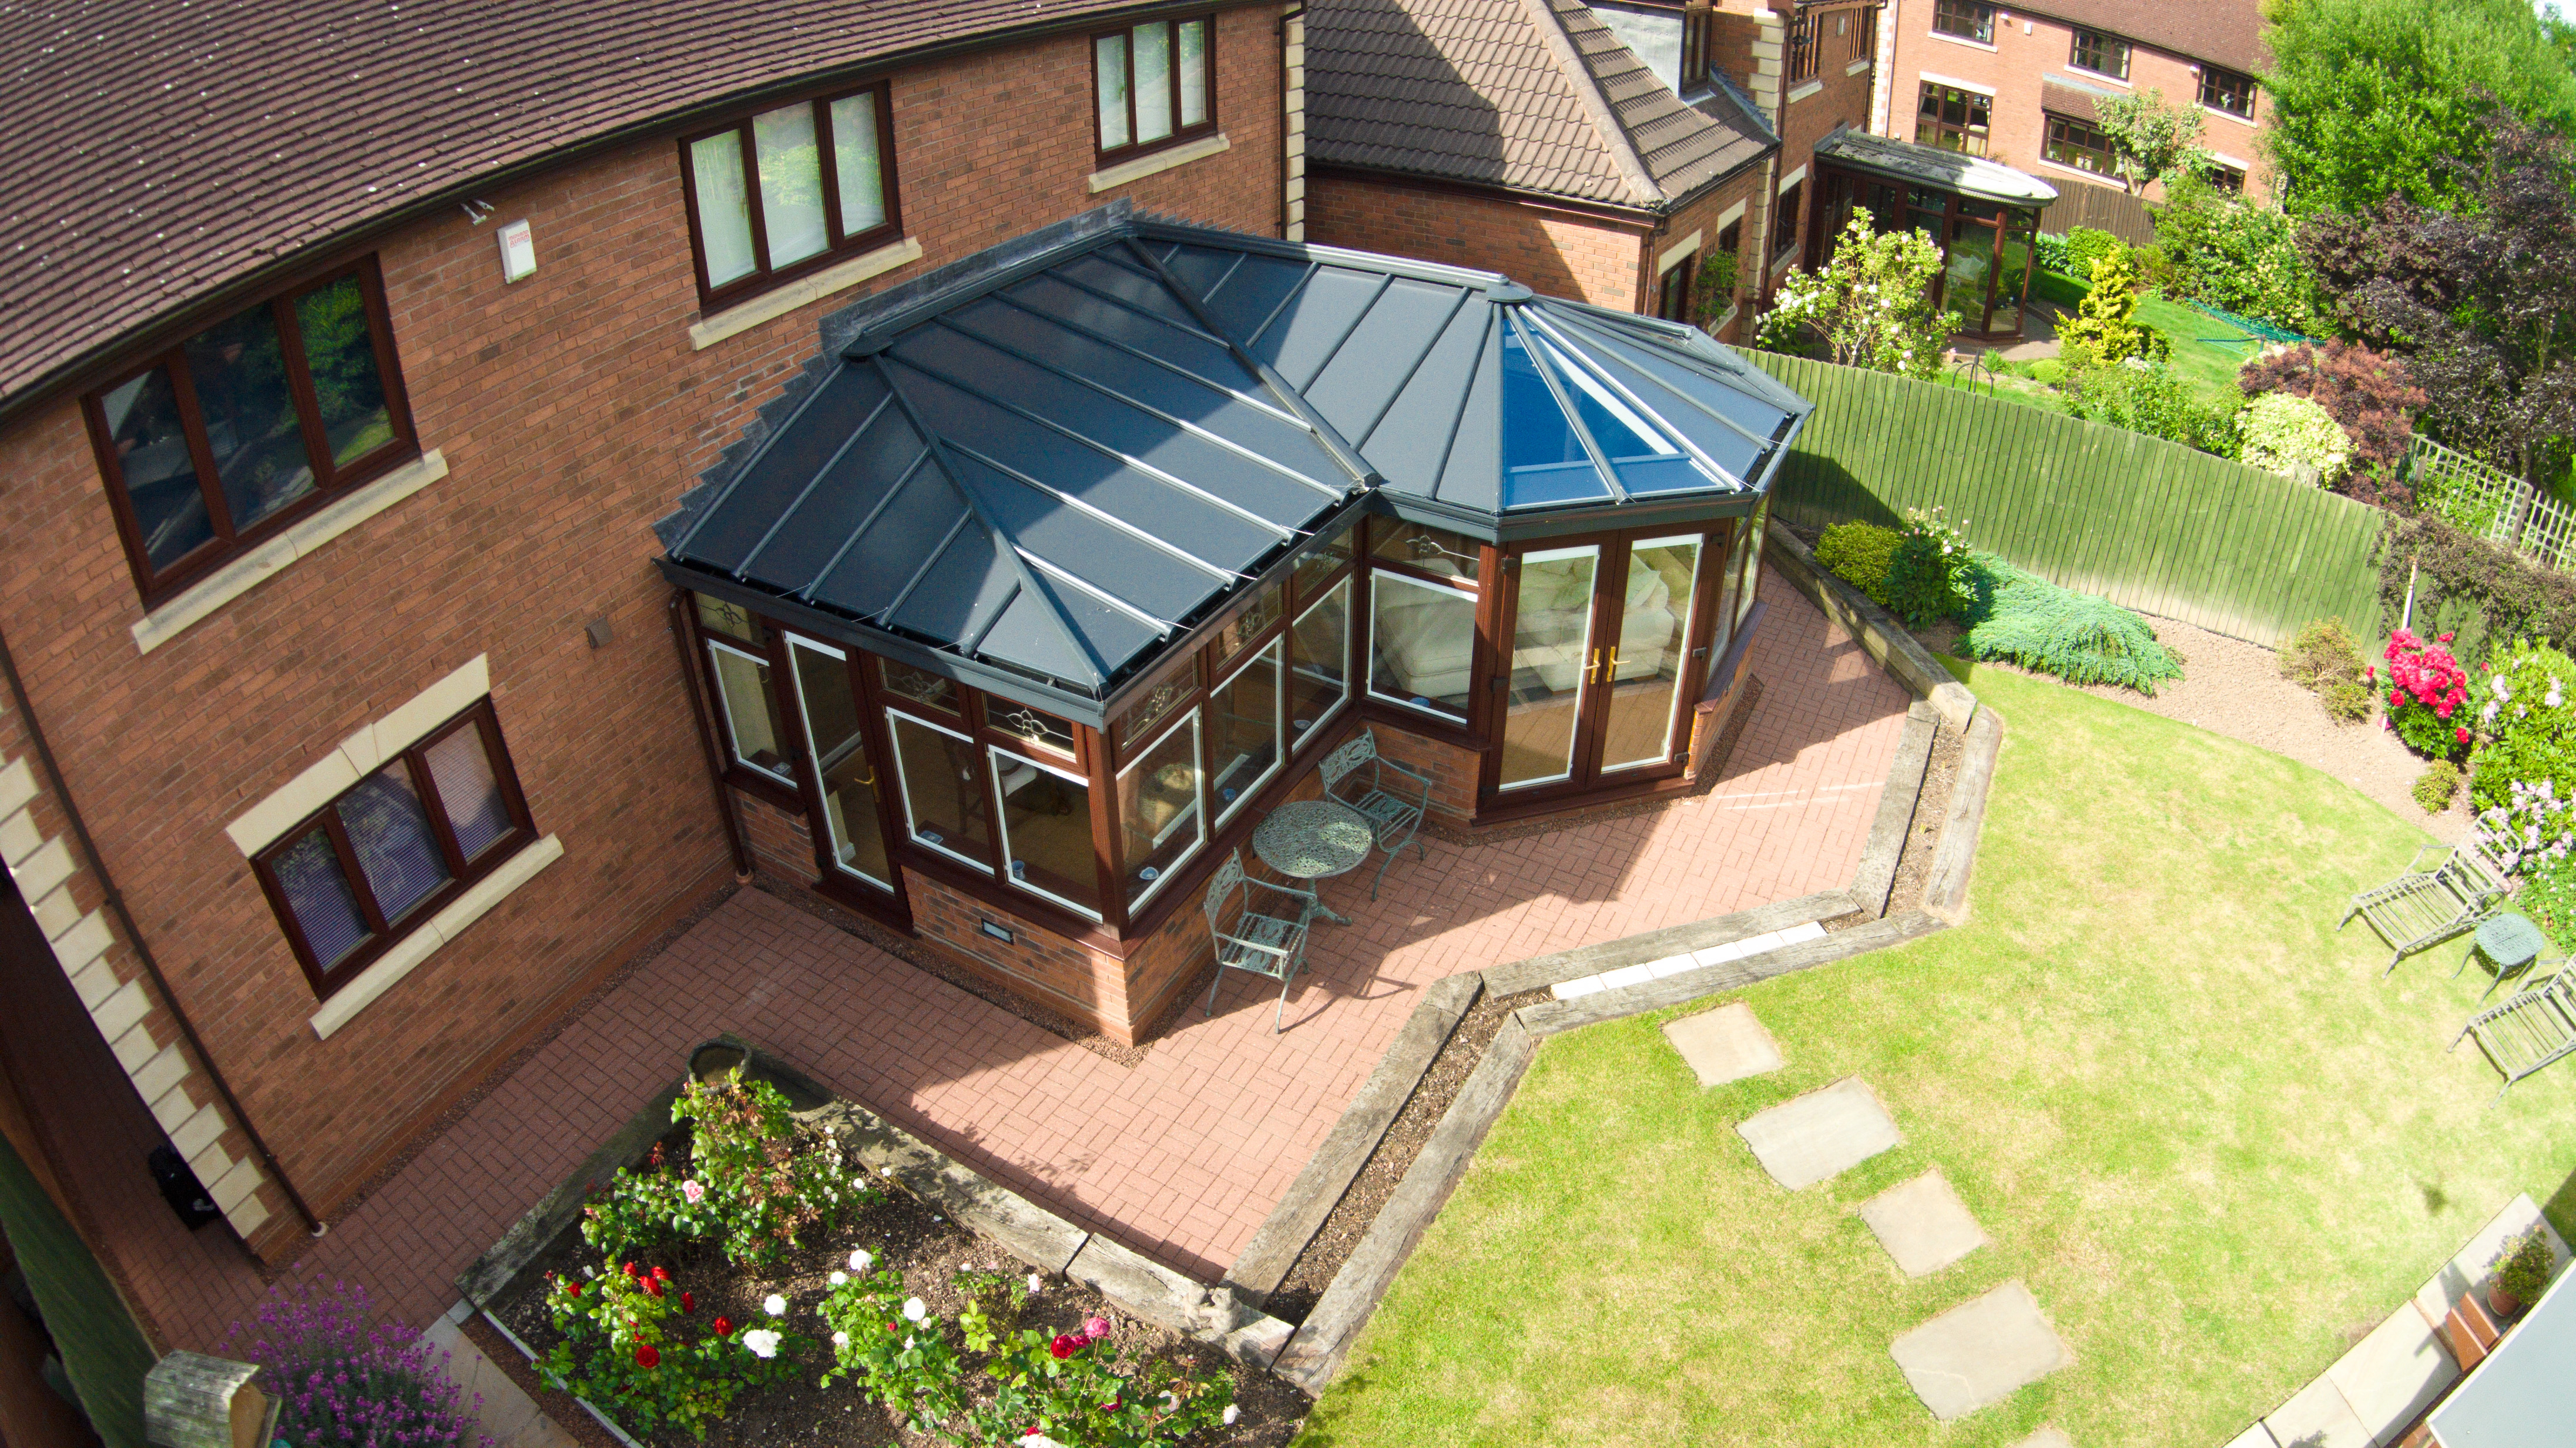 Conservatory Roof Replacements, Bury St Edmunds